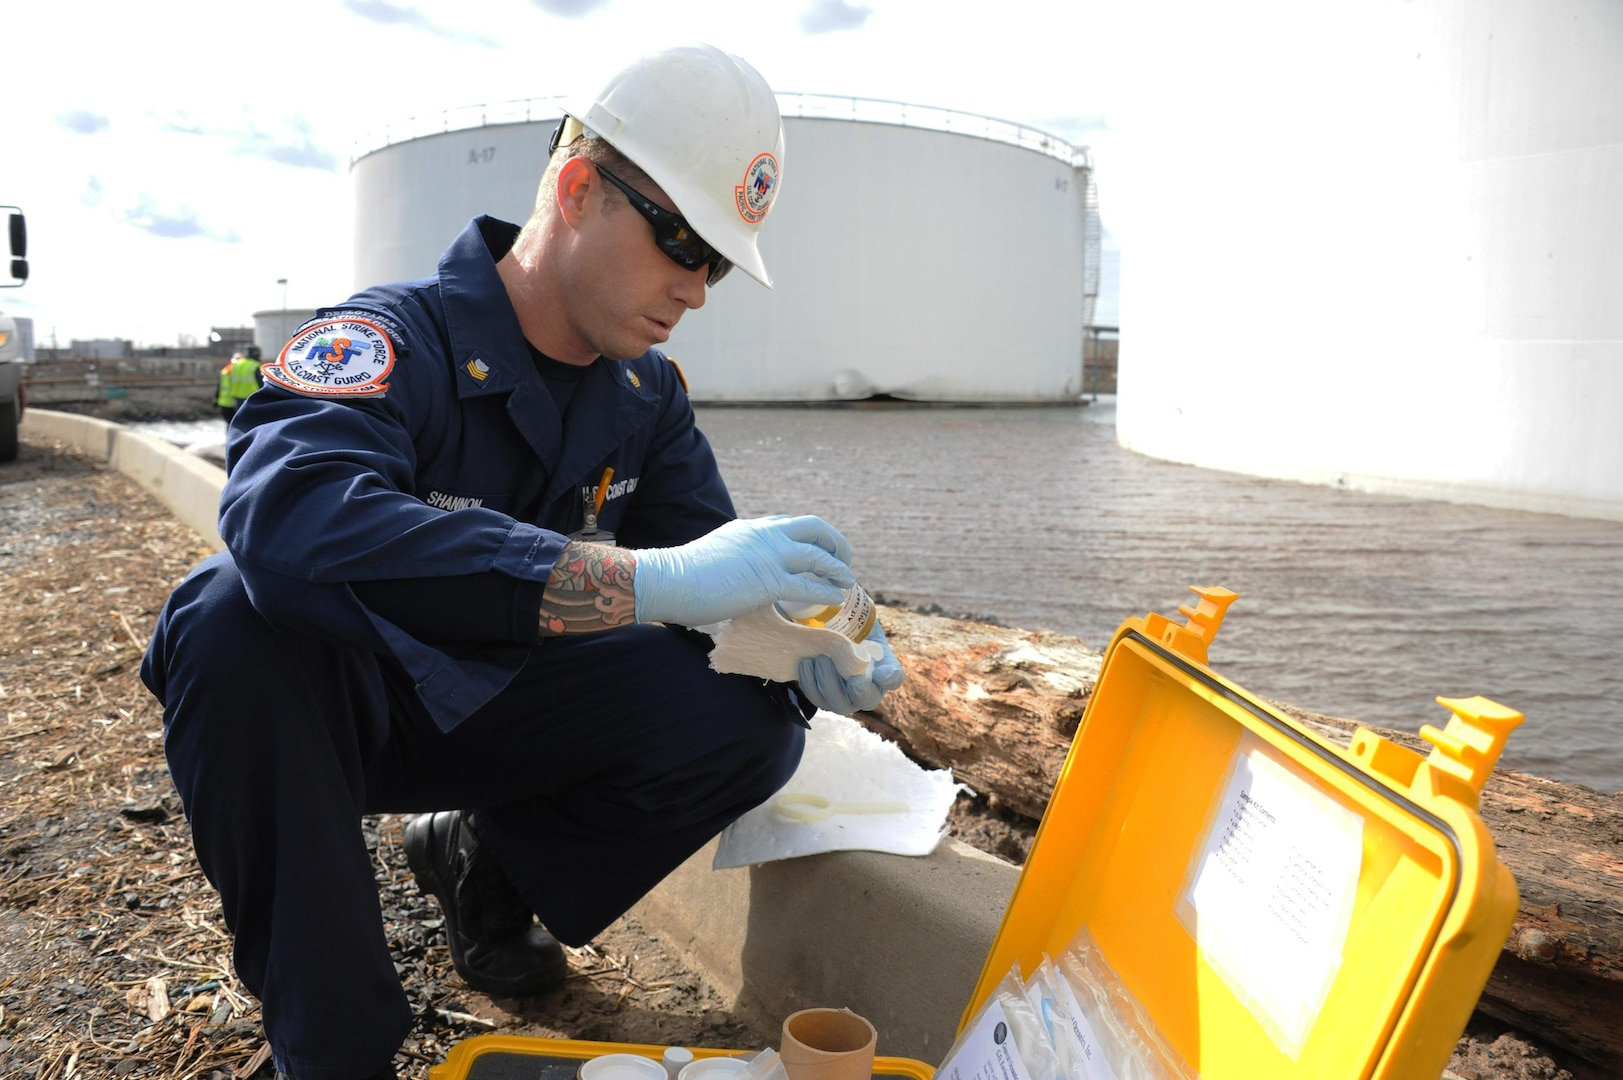 A Marine Science Technician with the Pacific Strike Team, takes a sample near a damaged tank that leaked during Hurricane Sandy at the Motiva Terminal in Sewaren, N.J. Responders are working to remove contained pockets of oil that leaked from the facility during Hurricane Sandy utilizing skimmers, vacuum trucks, absorbent pads and boom. (U.S. Coast Guard photo by Petty Officer 2nd Class Jaclyn Young)